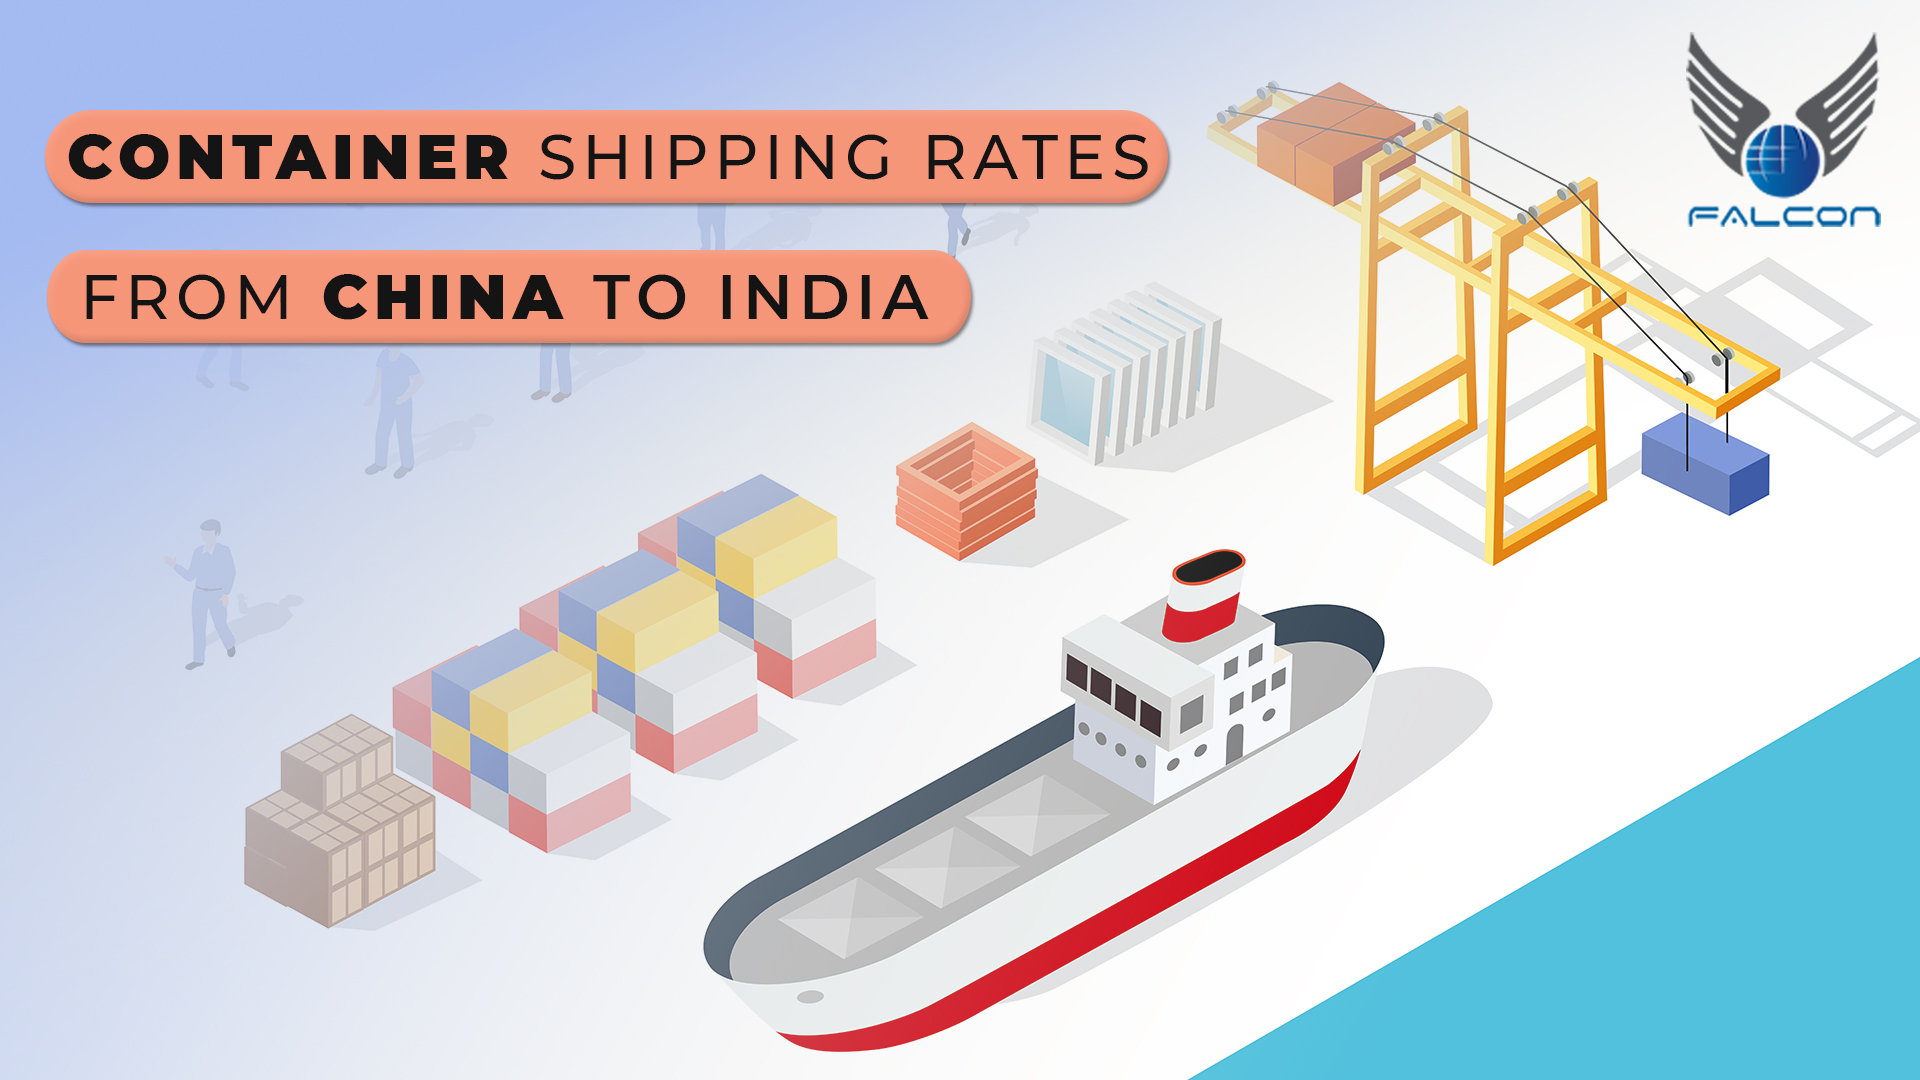 Container shipping rates from China to India